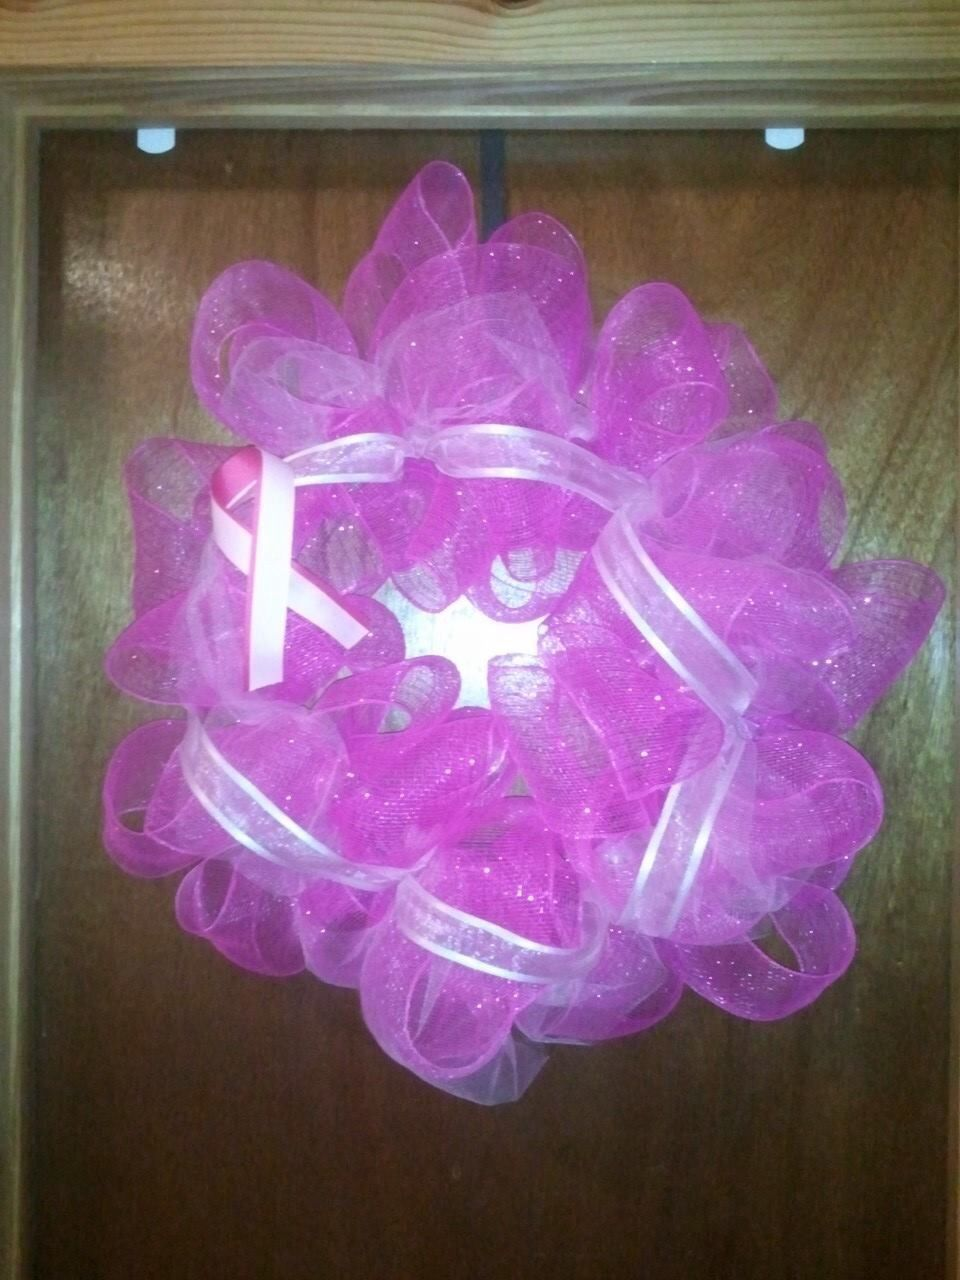 Awareness Wreath for the Mammography Dept at my hospital